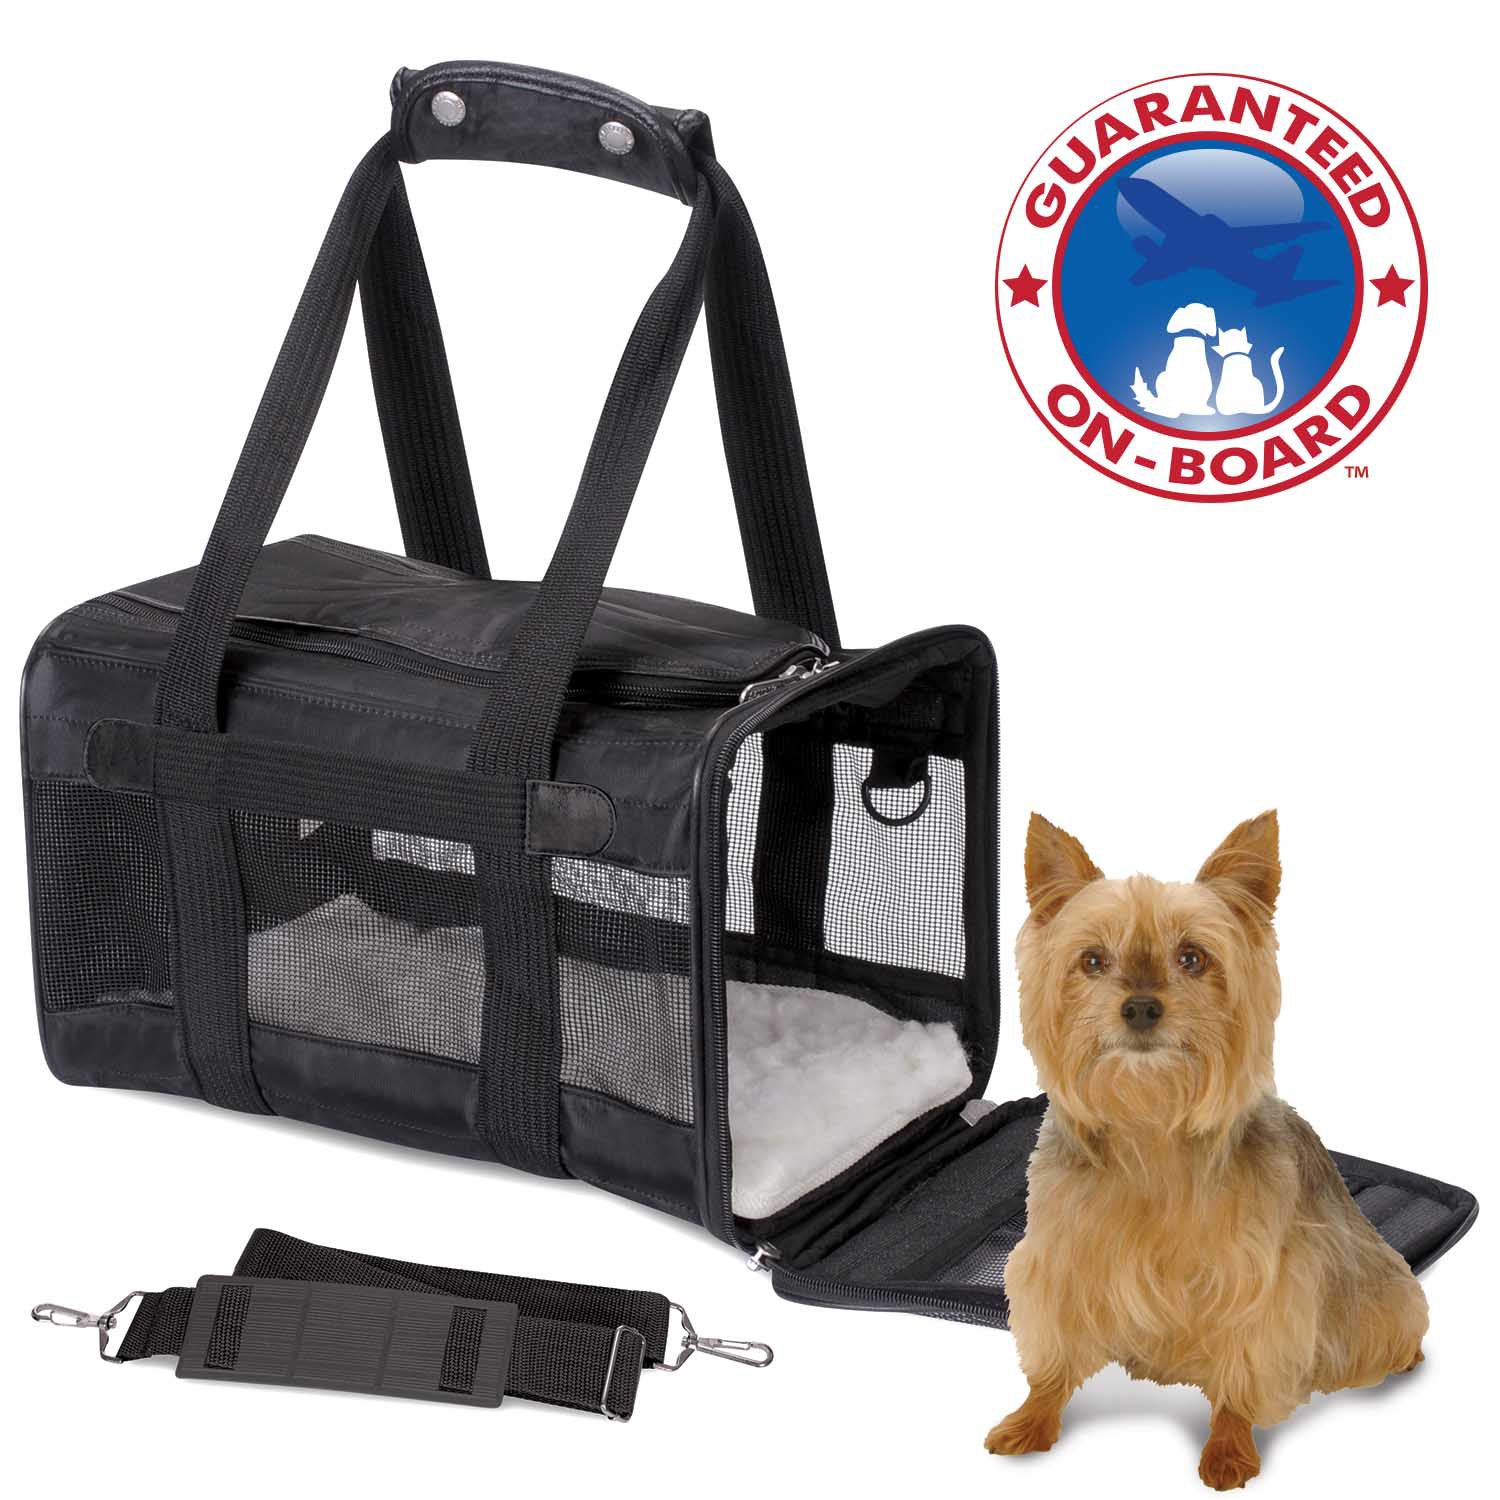 The Original Sherpa Dog Carrier In Black Petco